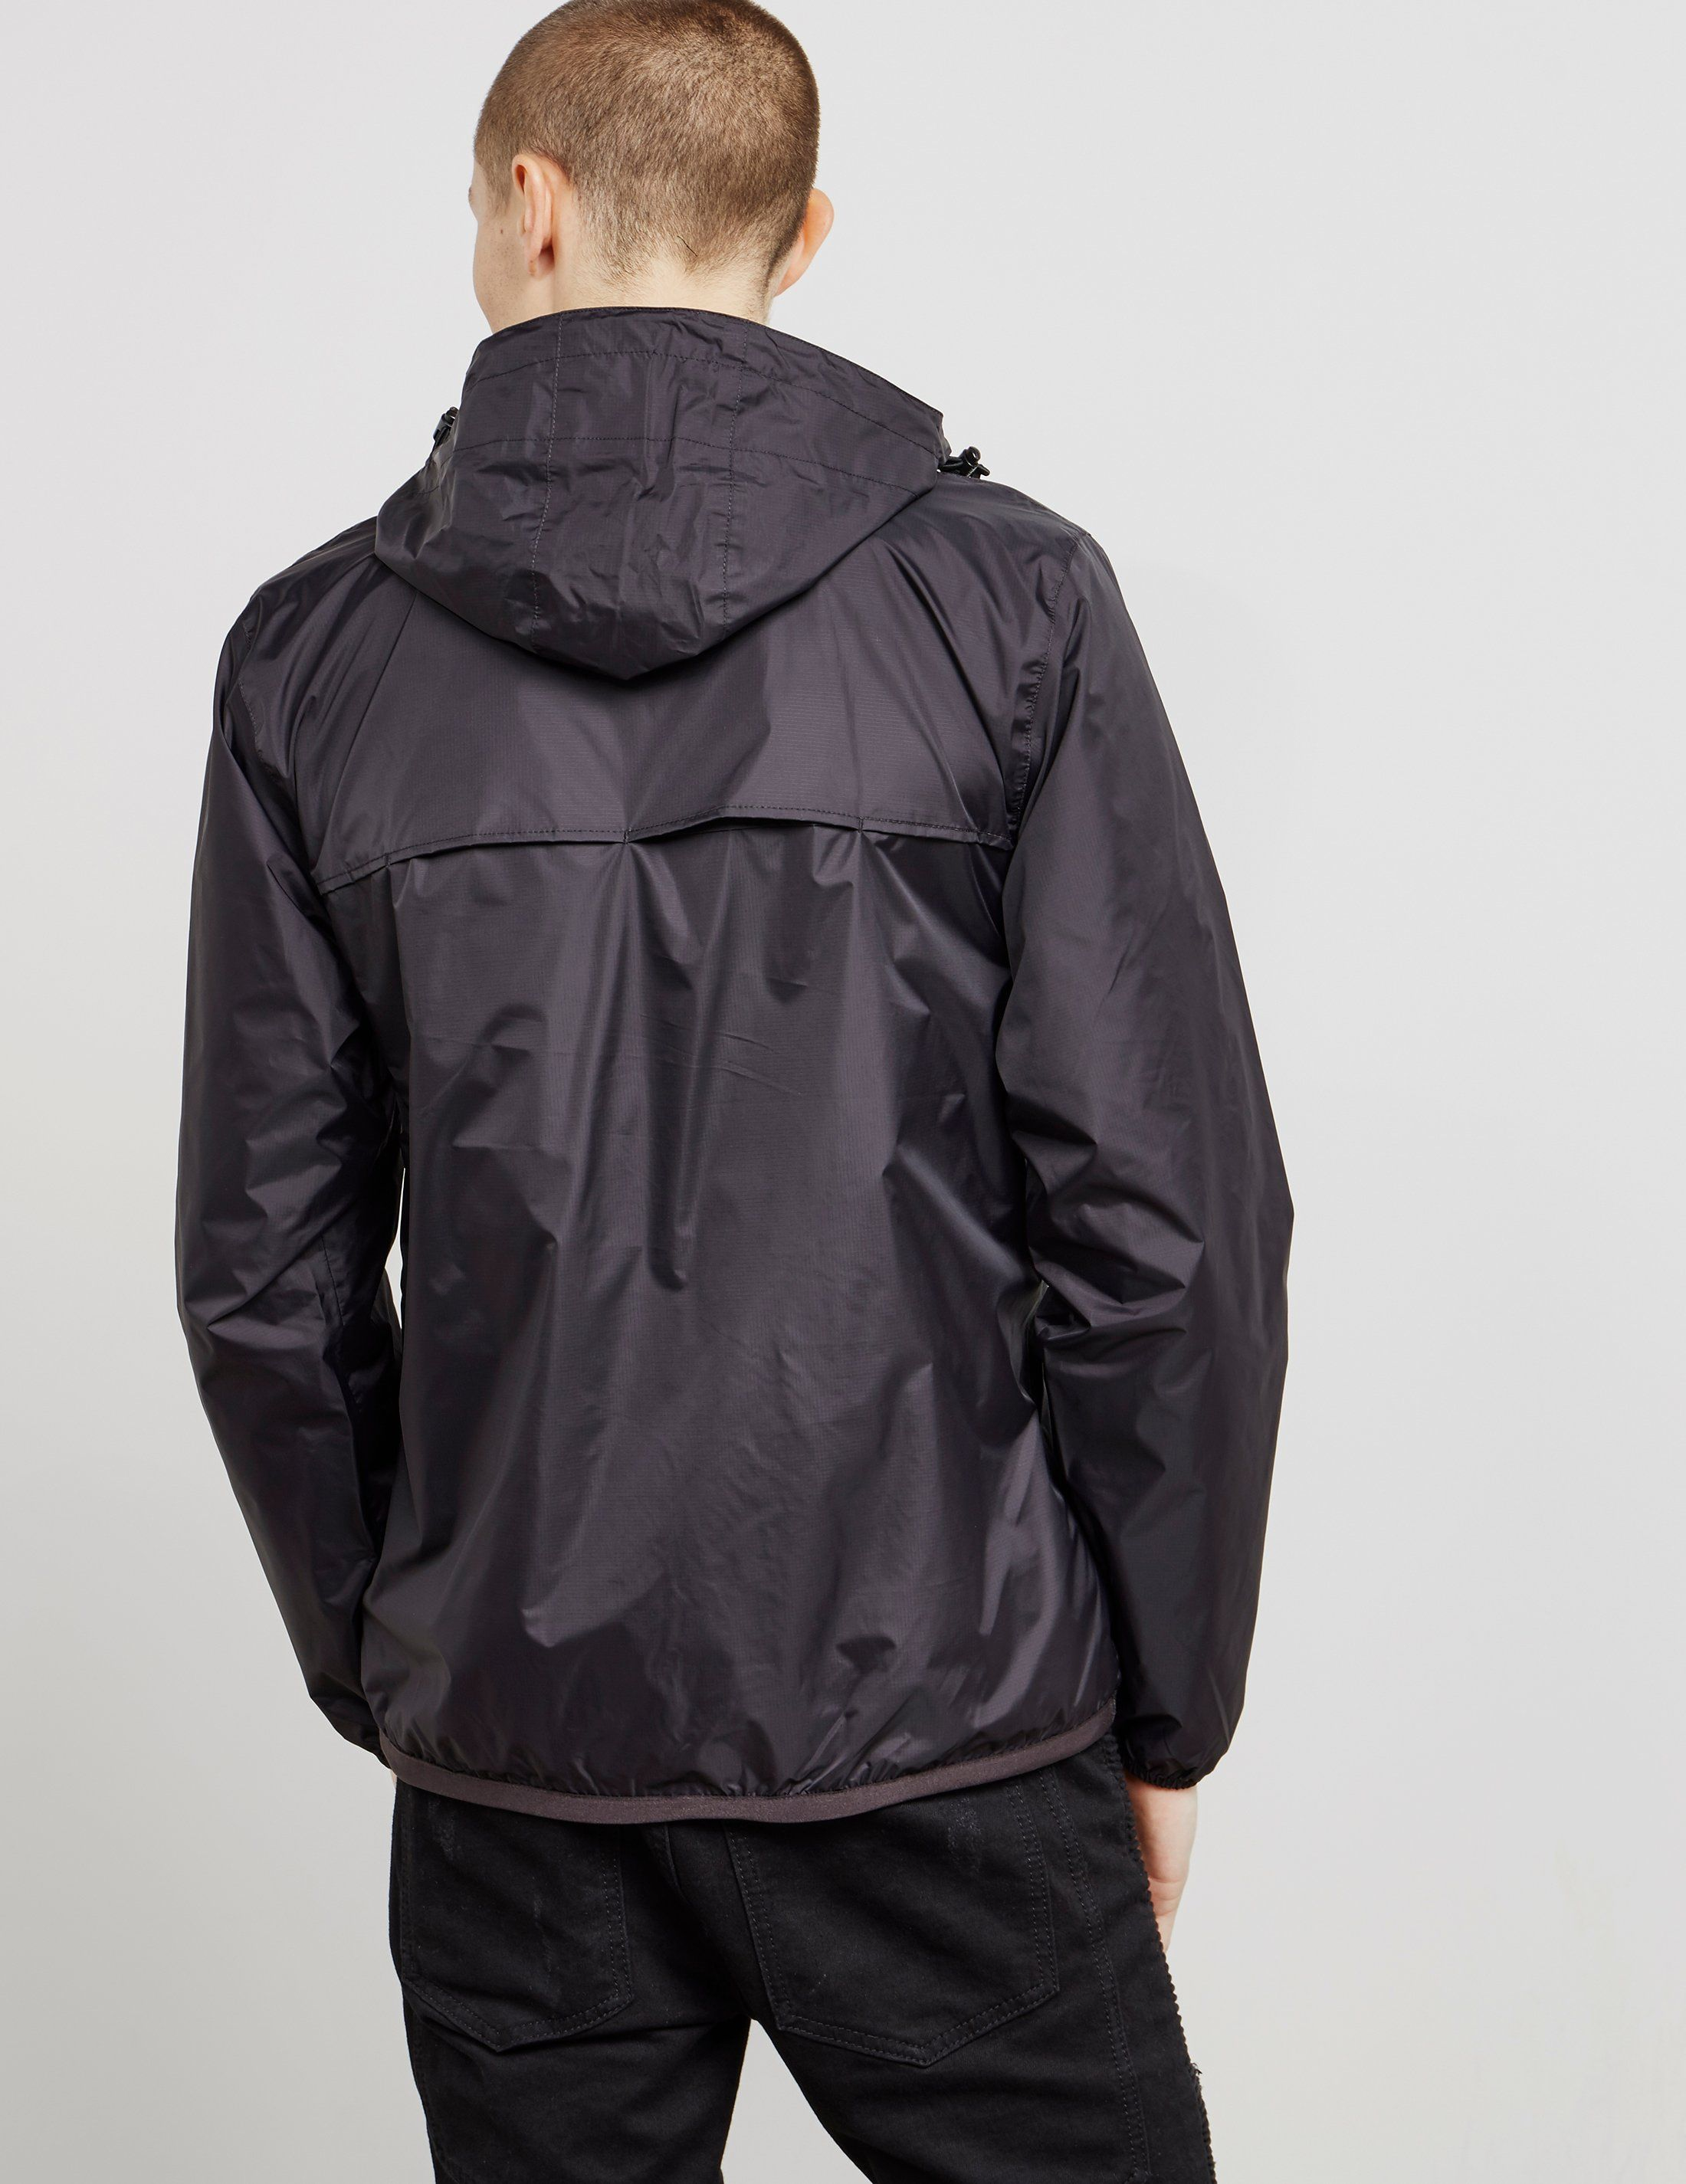 K-Way Le Vrai Leon Half Zip Lightweight Jacket